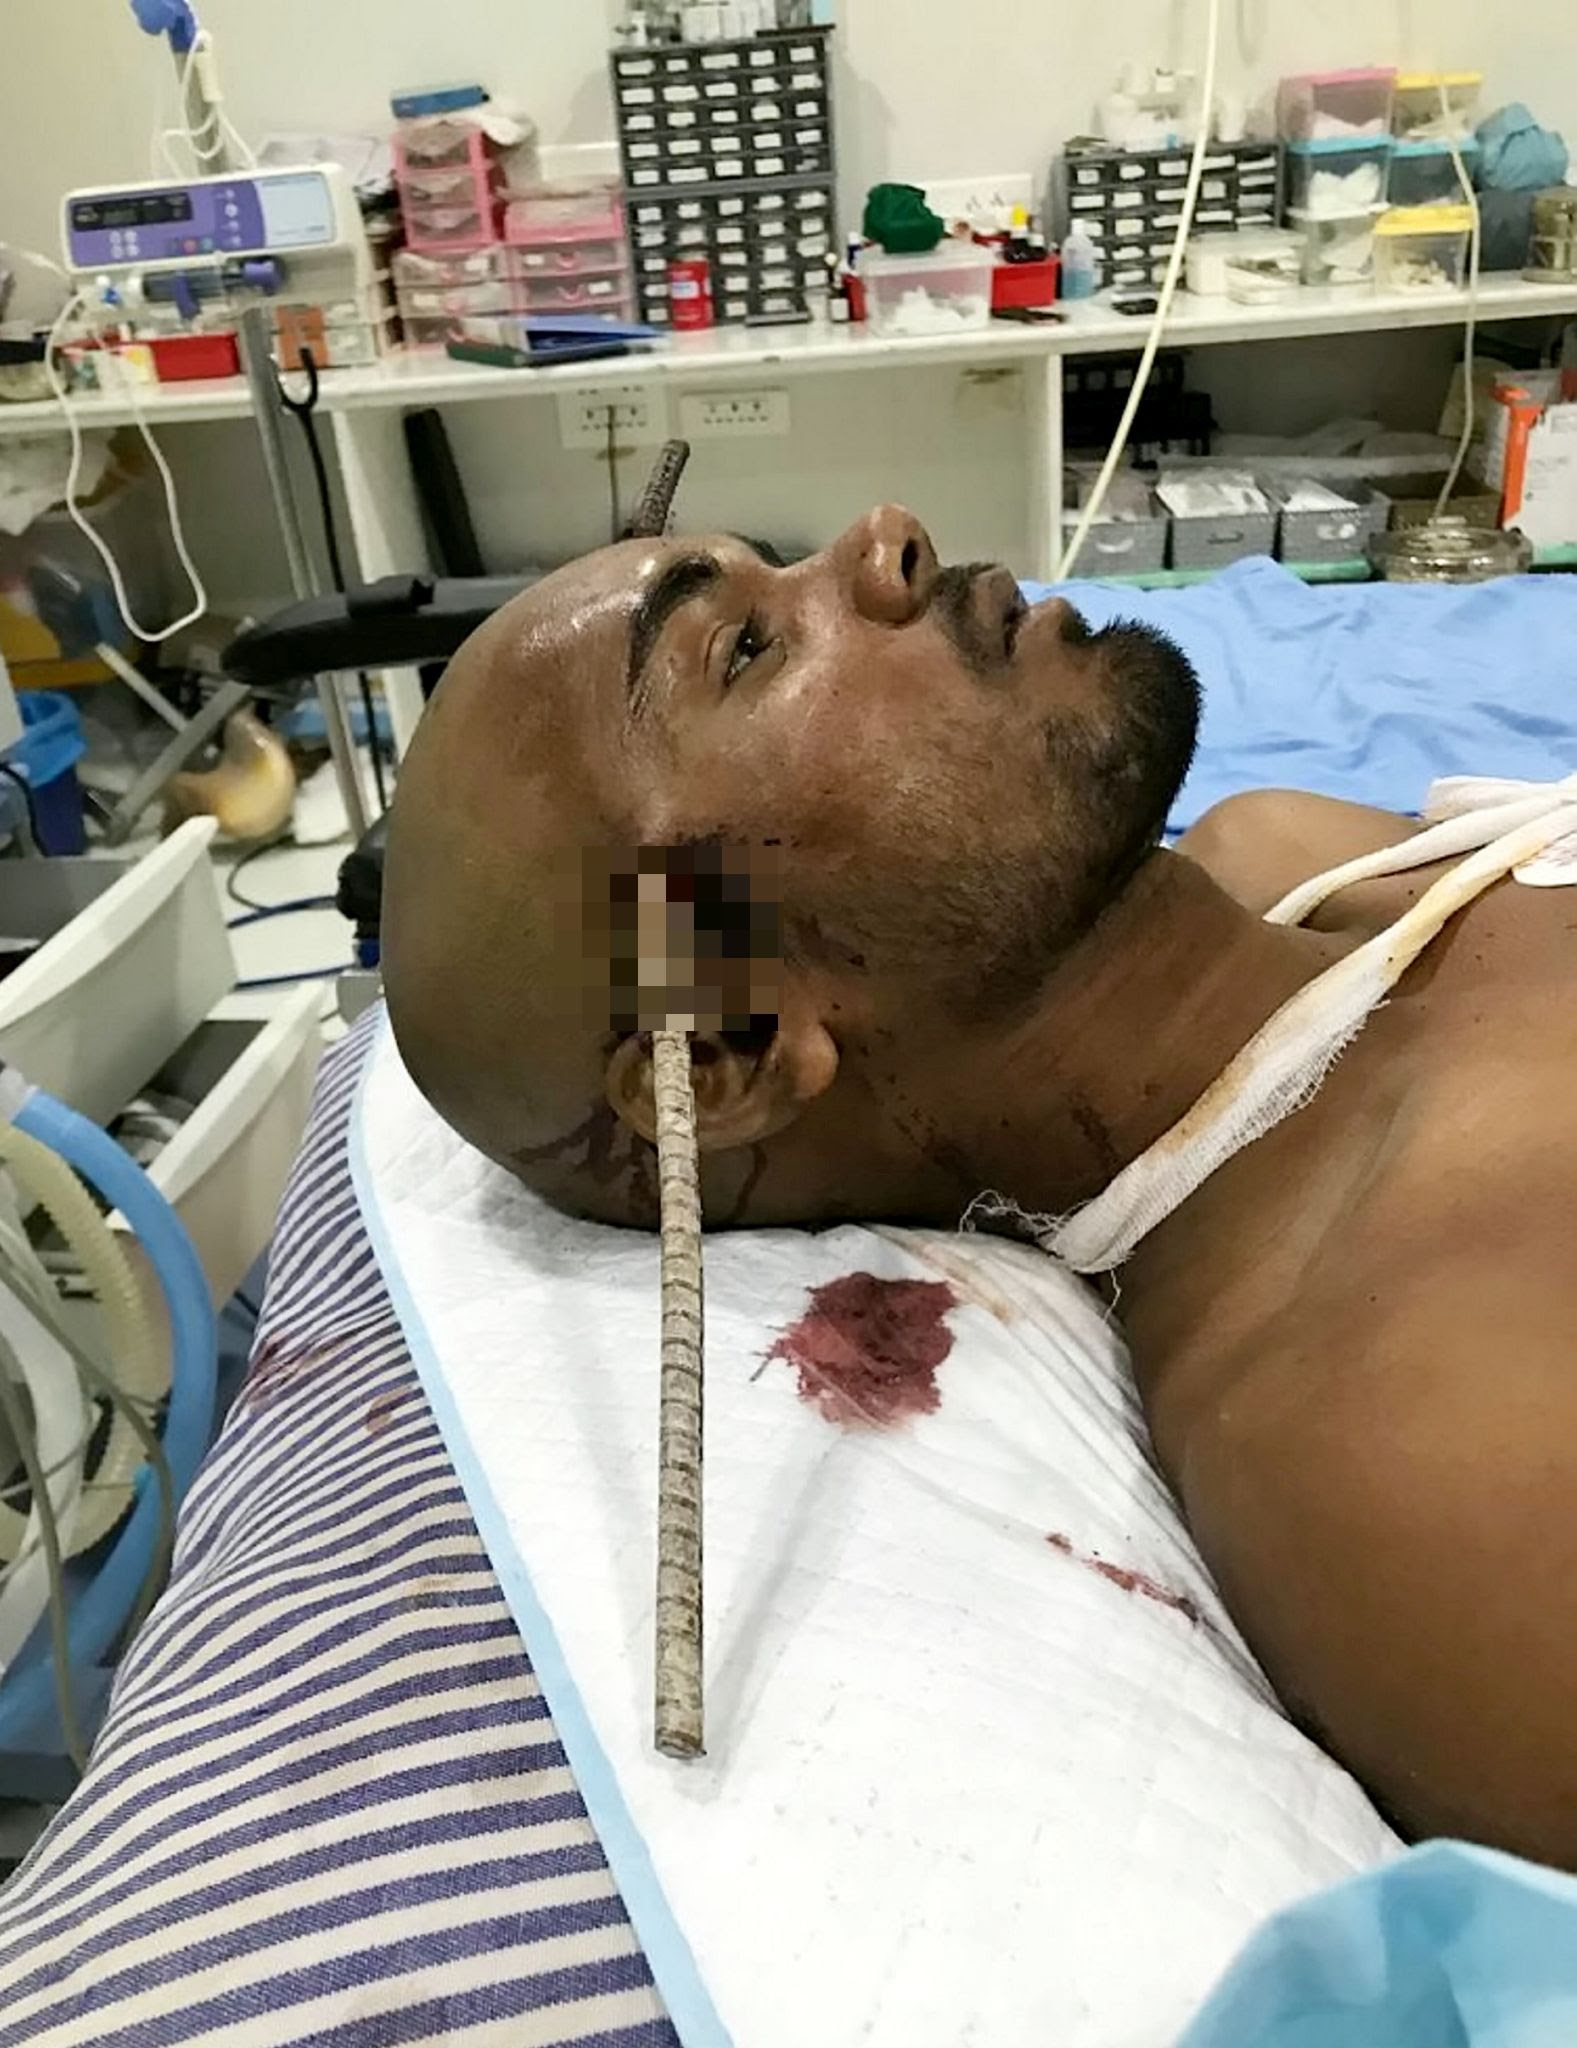 Sanjay Bahe's injuries after he was impaled through the head. Credit: SWNS